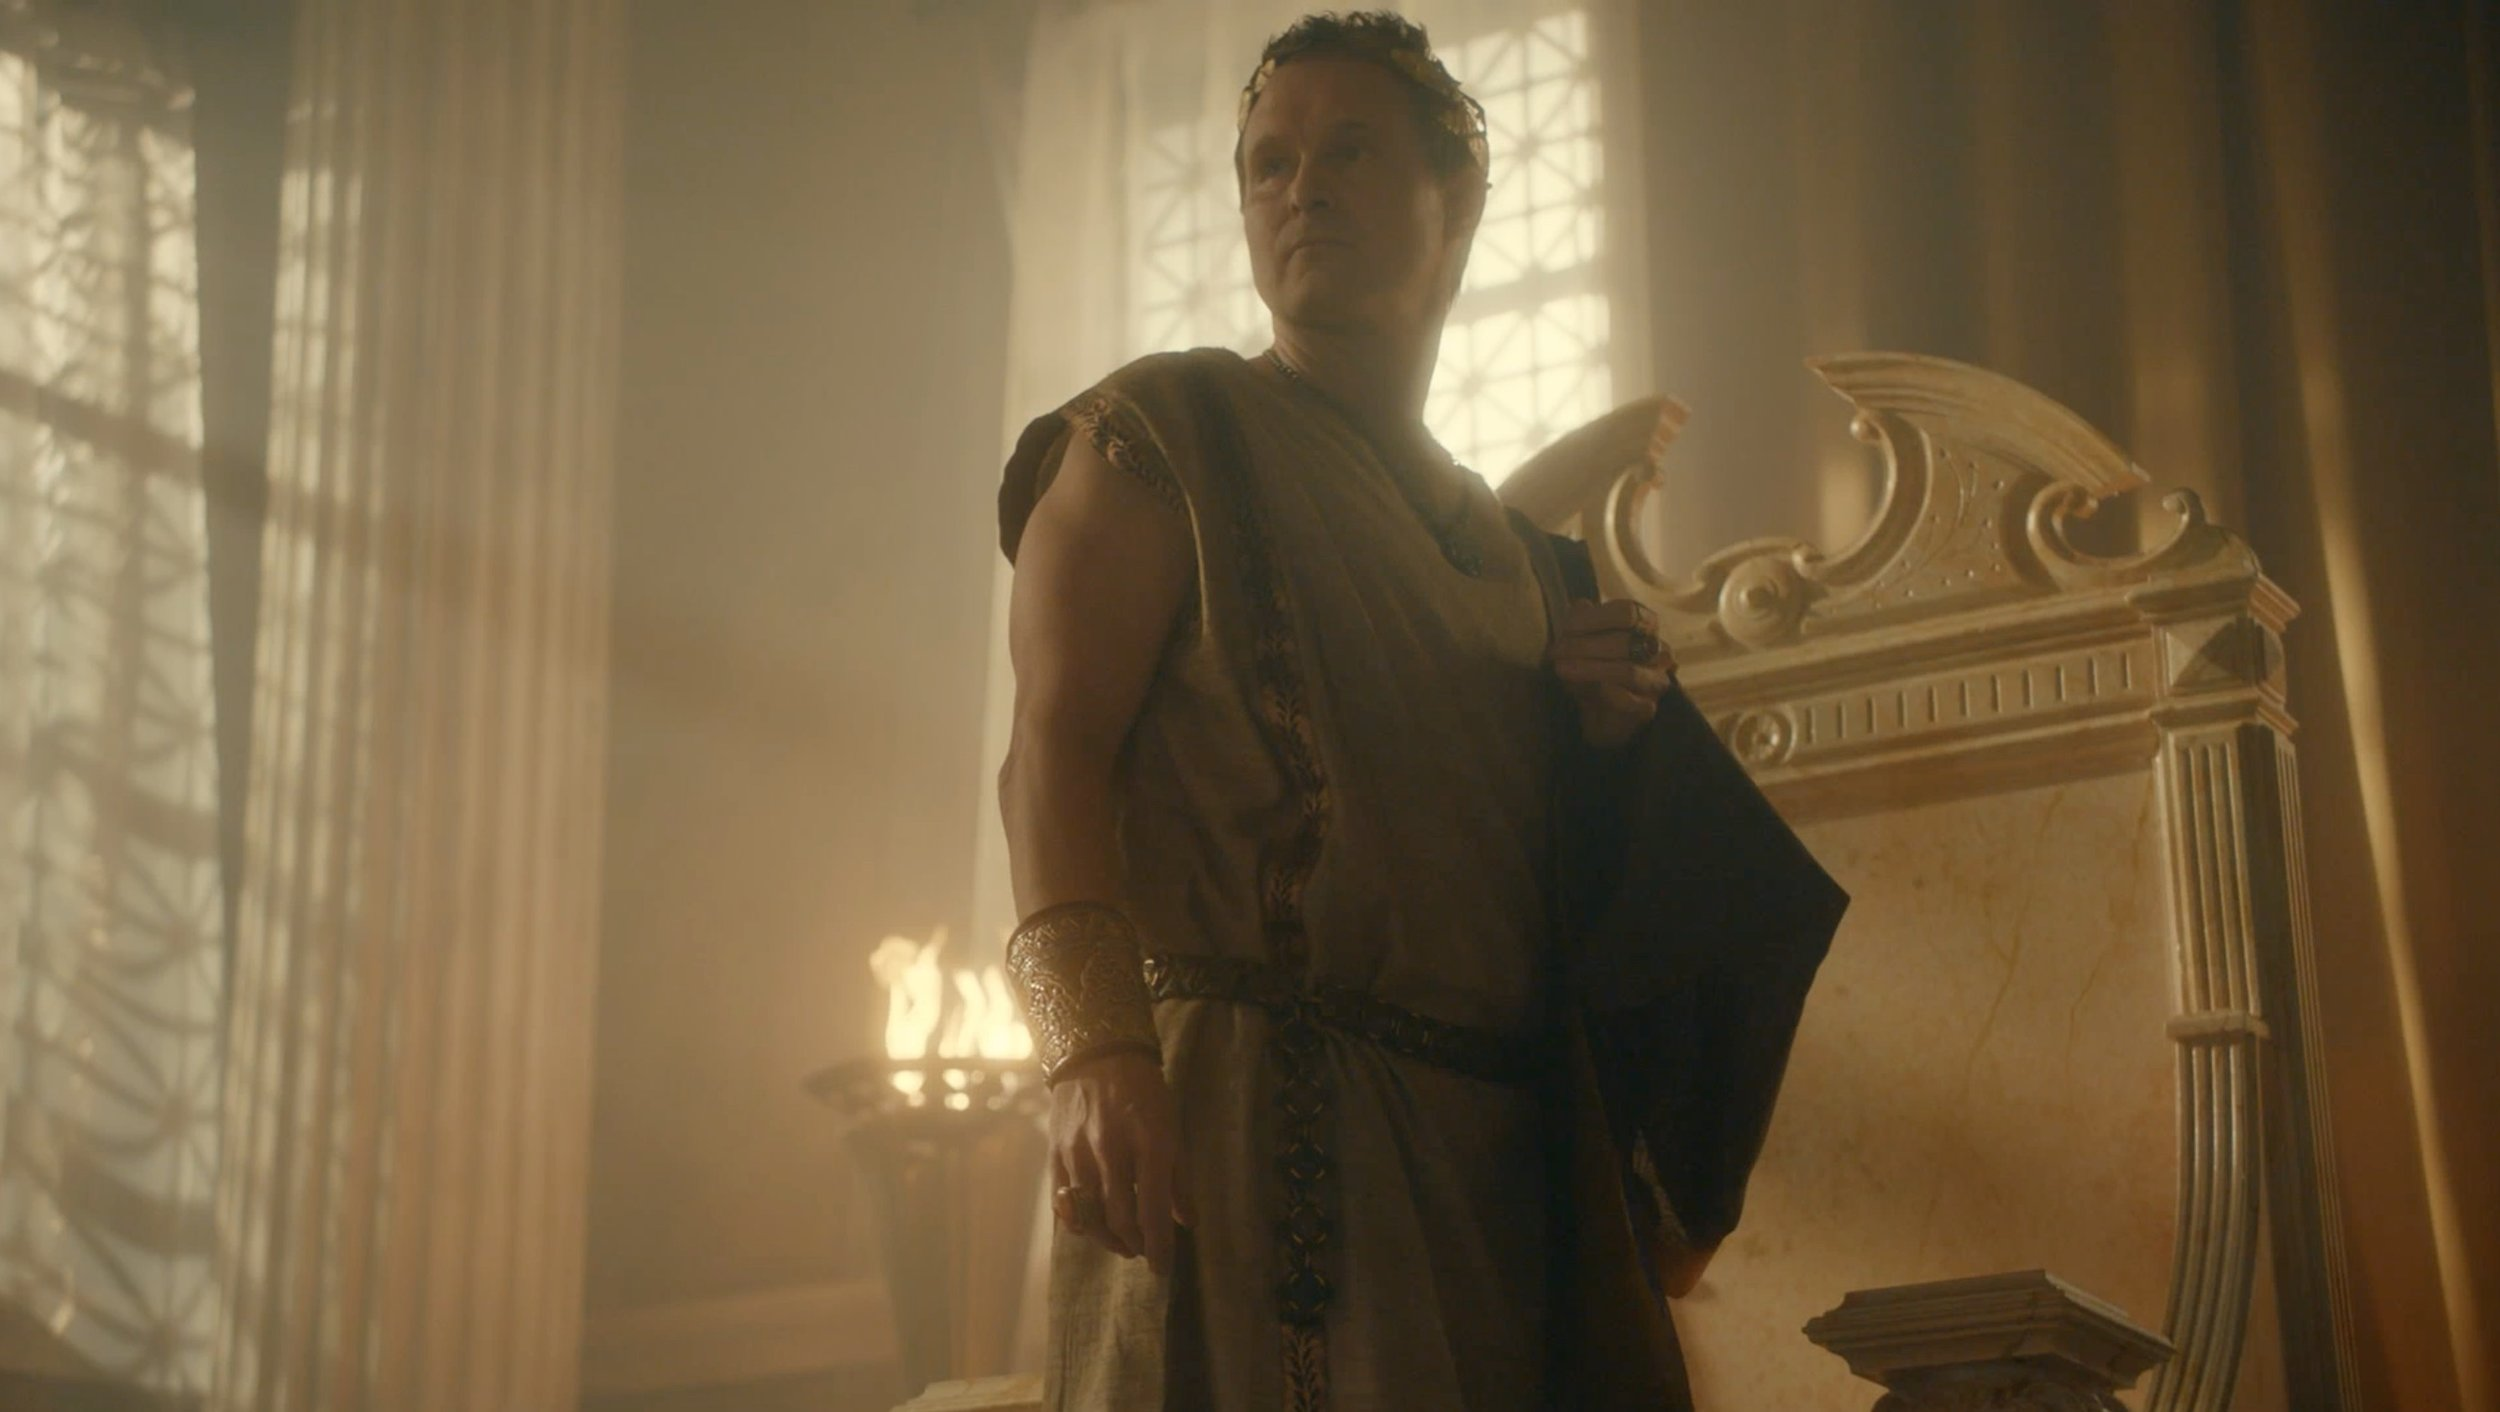 ROMAN EMPIRE (Netflix)   8x60 Series documenting the lives of famous Roman rulers, Julius Caesar, Cleopatra, Pompey, etc.